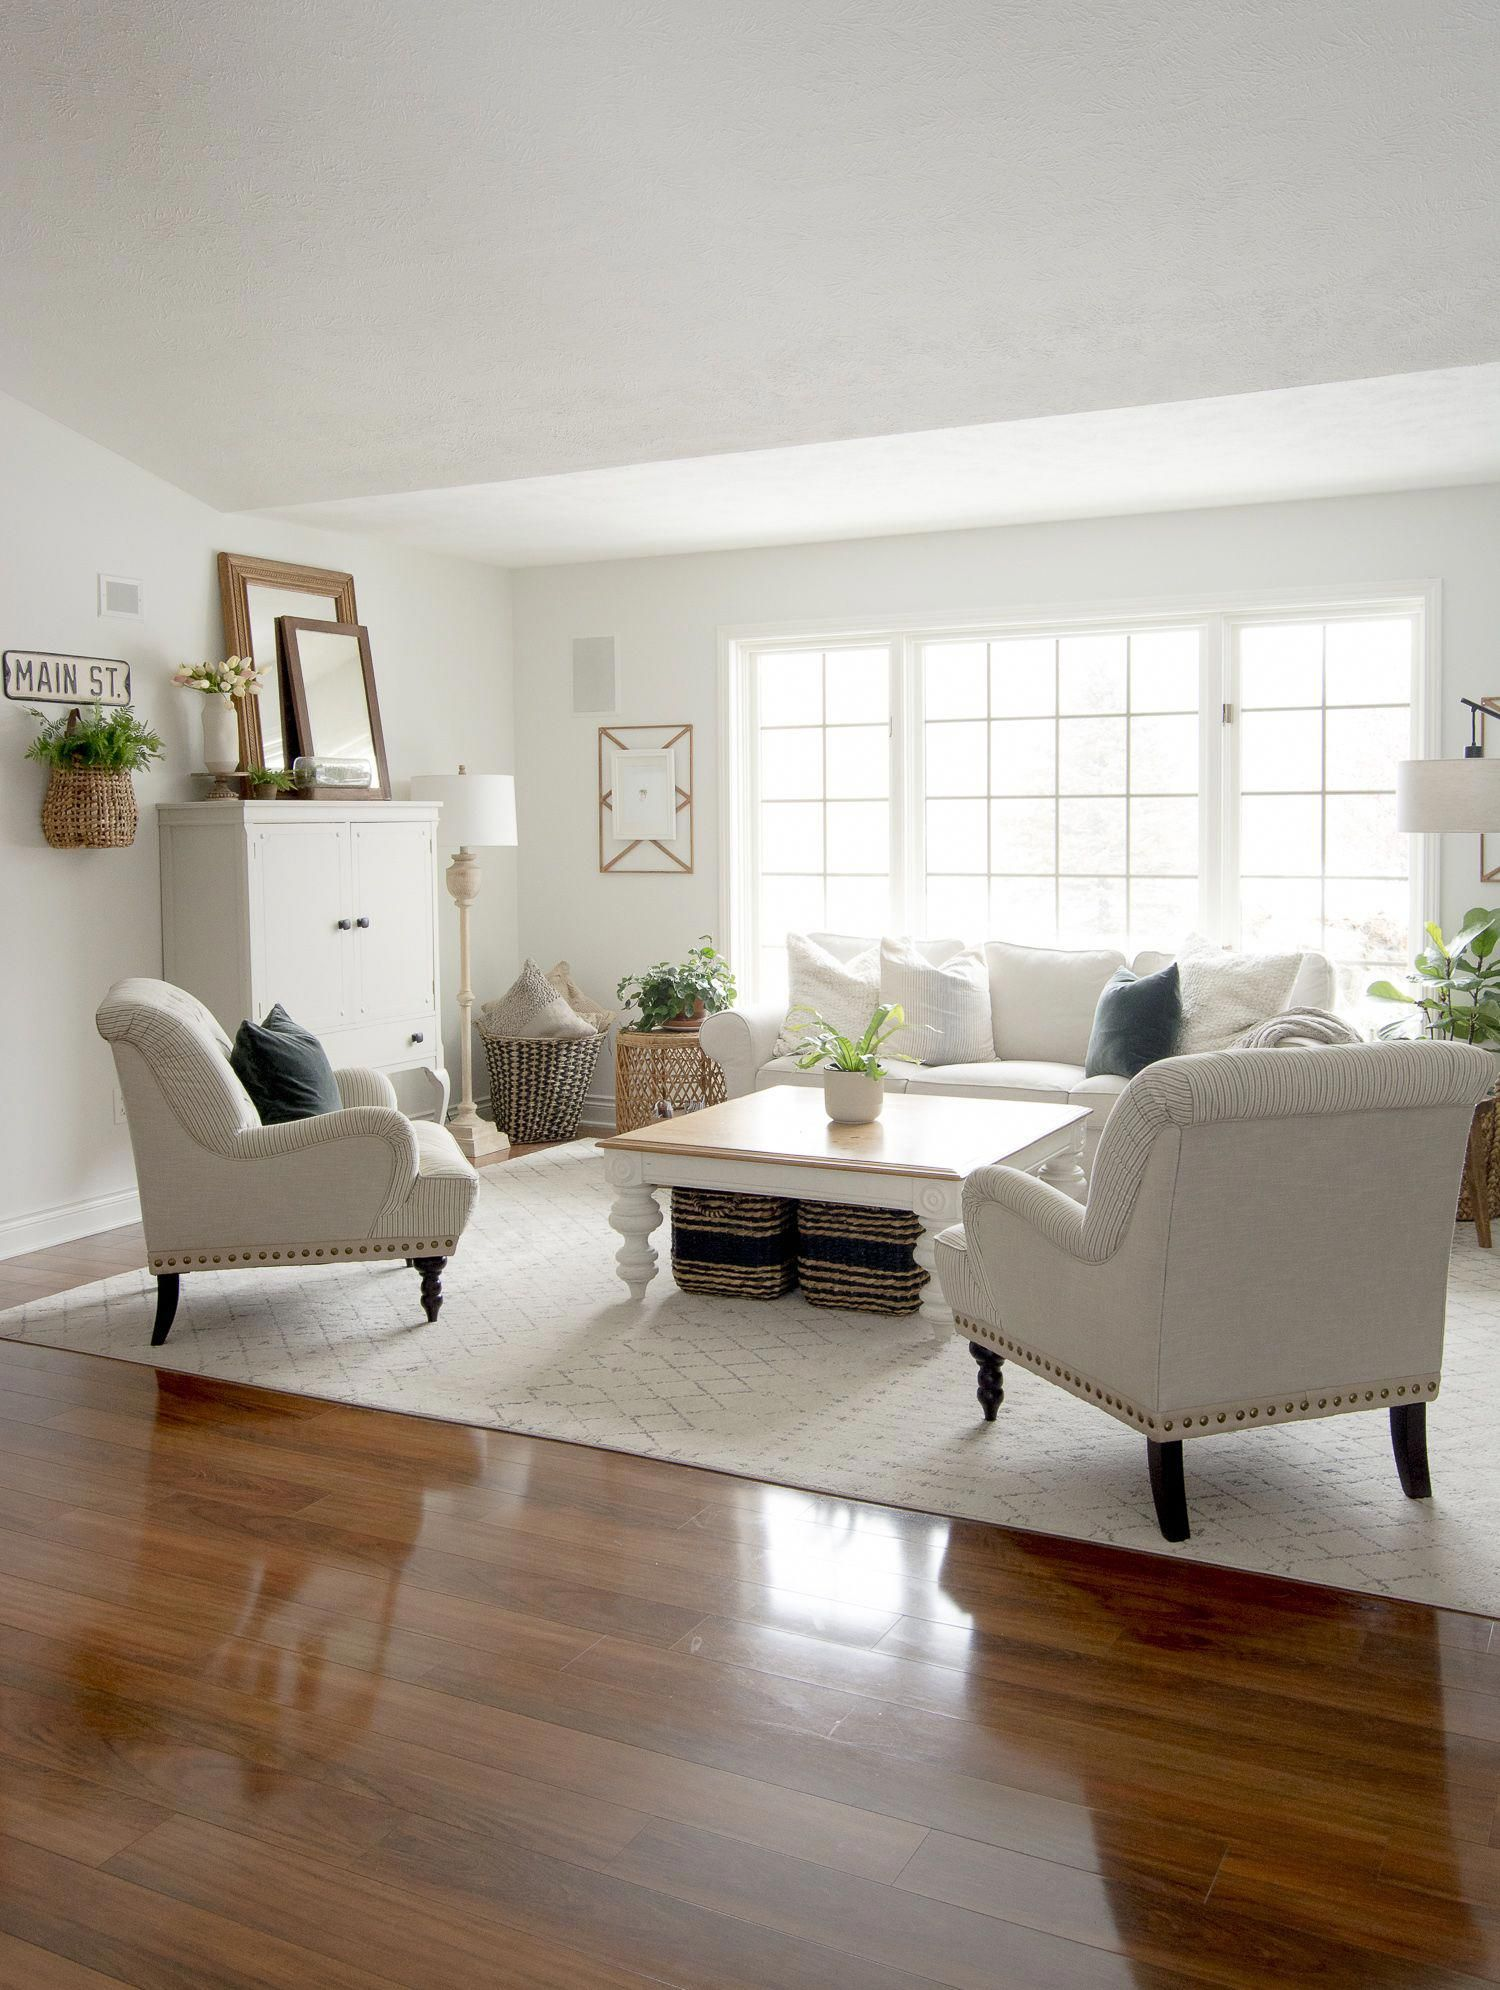 ModernFurnitureLowPrice Farm house living room